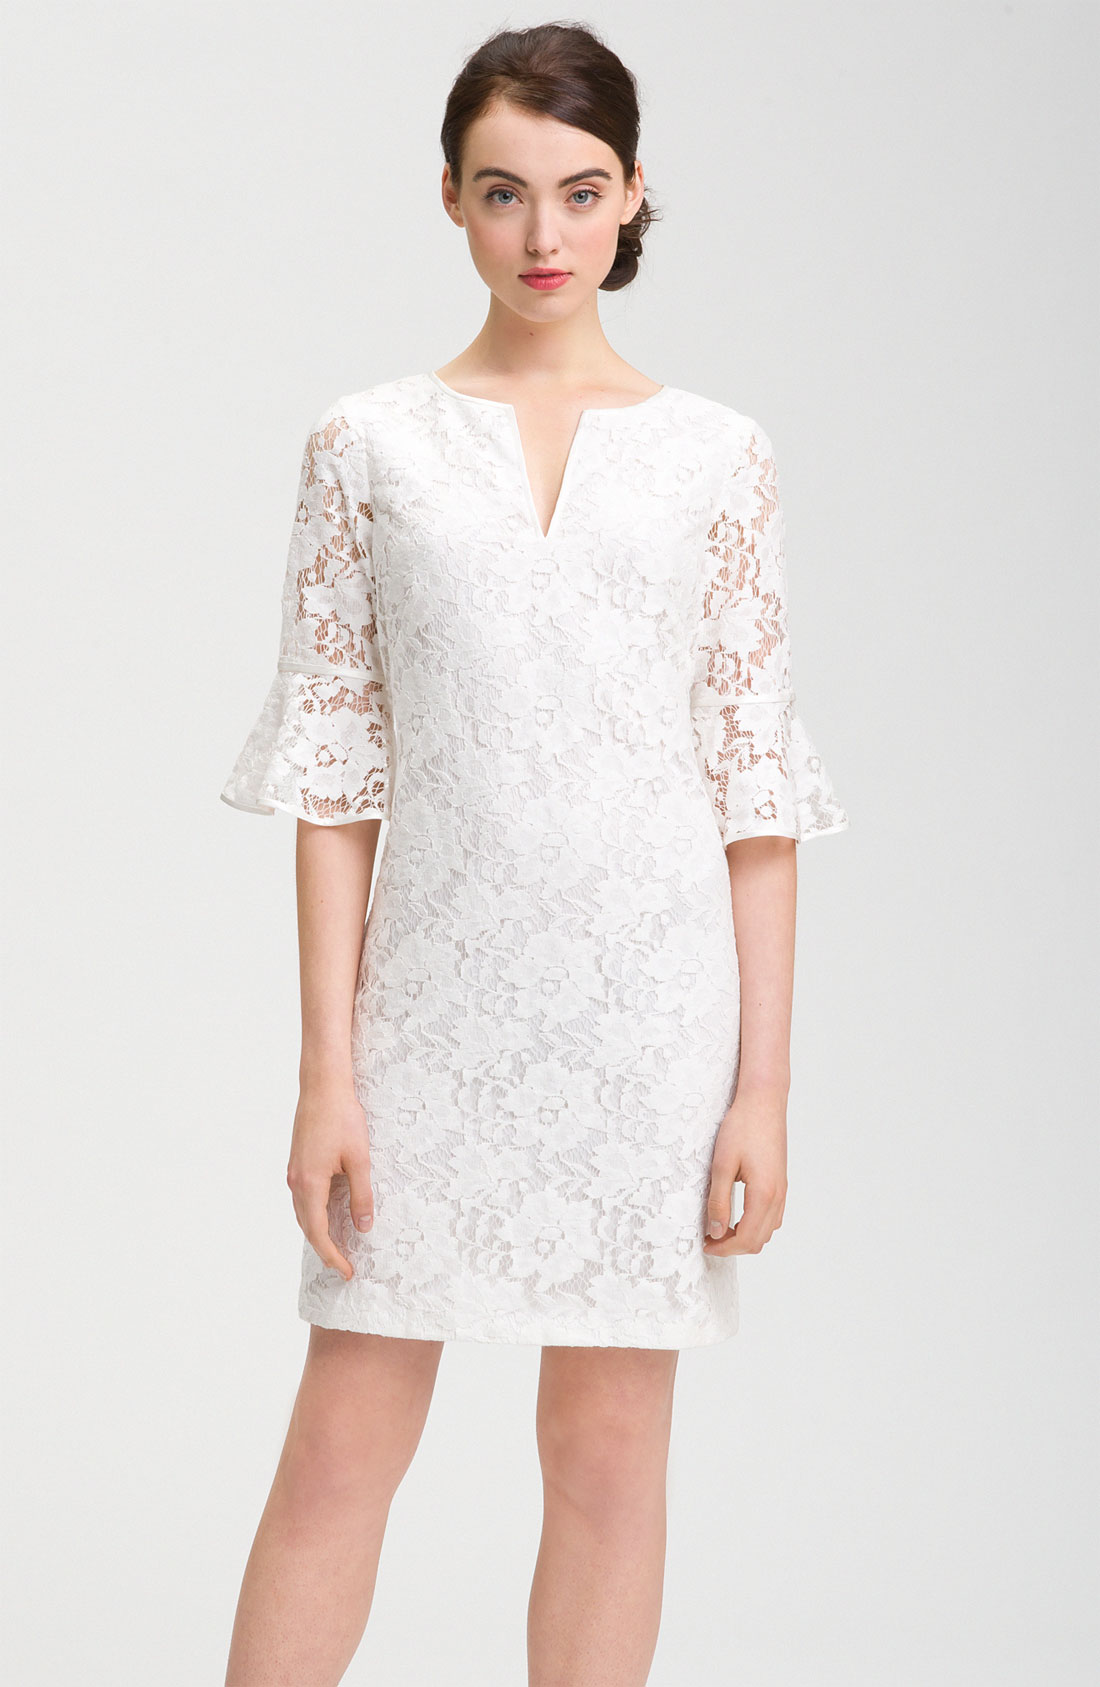 Adrianna Papell Ruffle Sleeve Lace Dress in White   Lyst